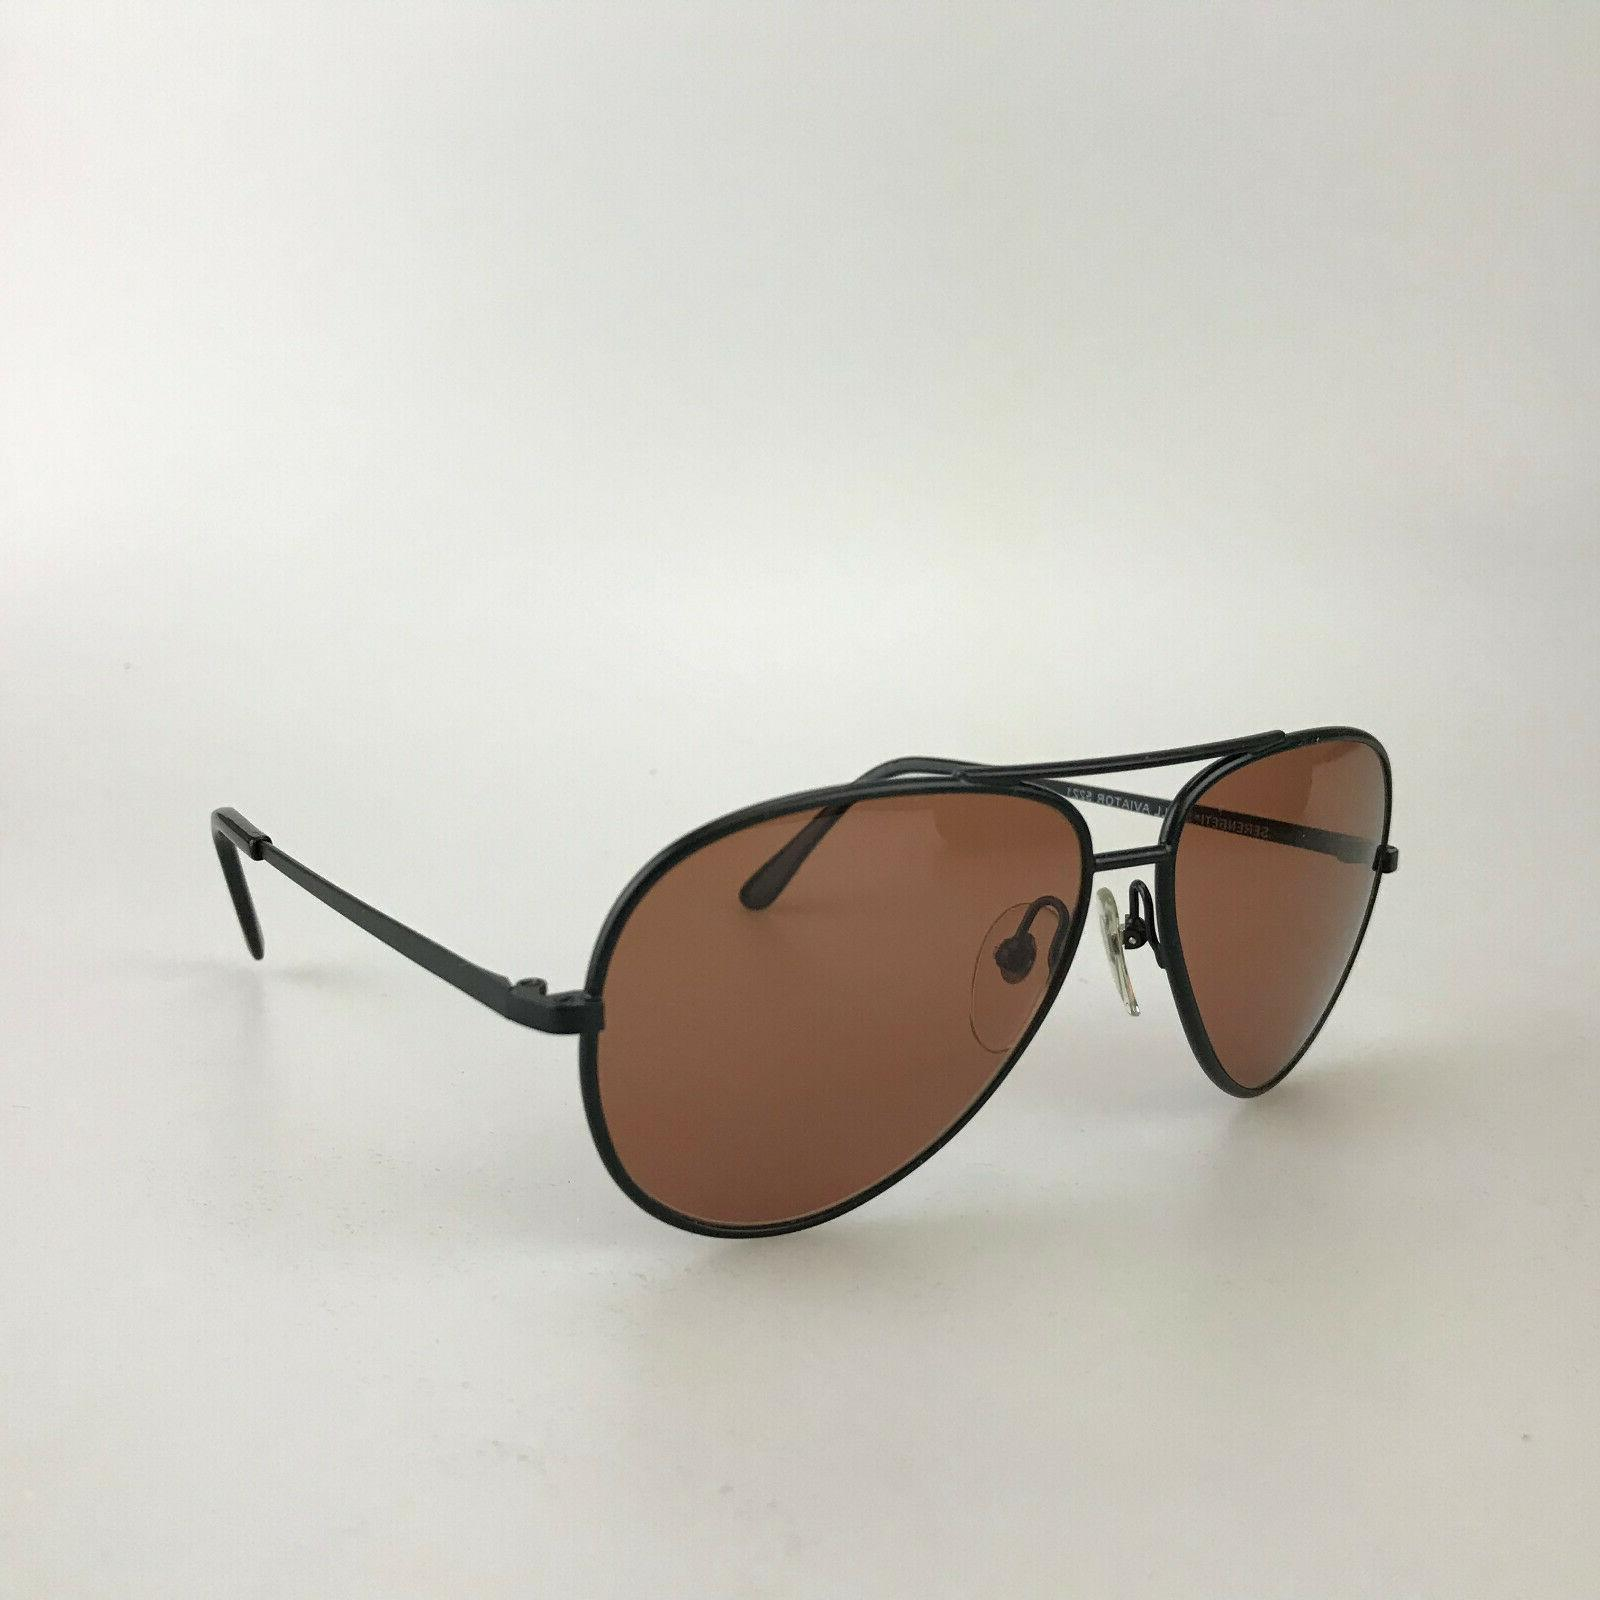 Vintage Sunglasses mod. Small Aviator 5221 Black